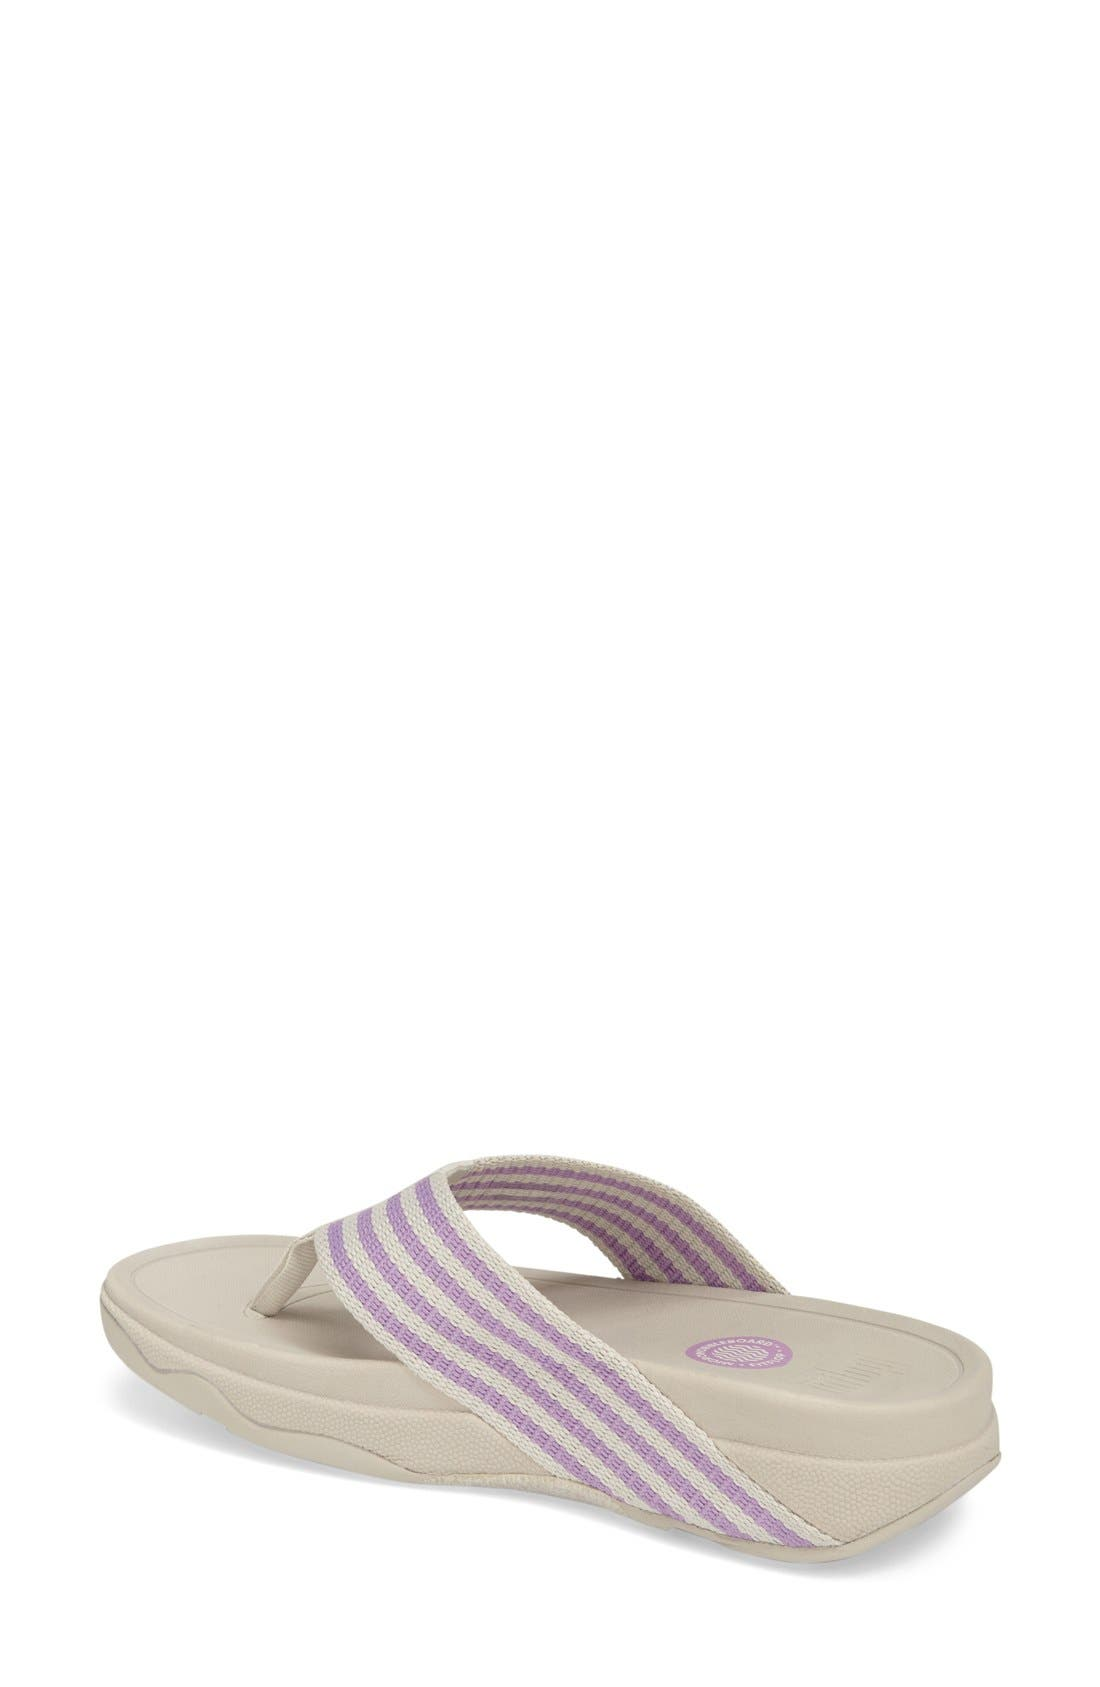 'Surfa' Thong Sandal,                             Alternate thumbnail 15, color,